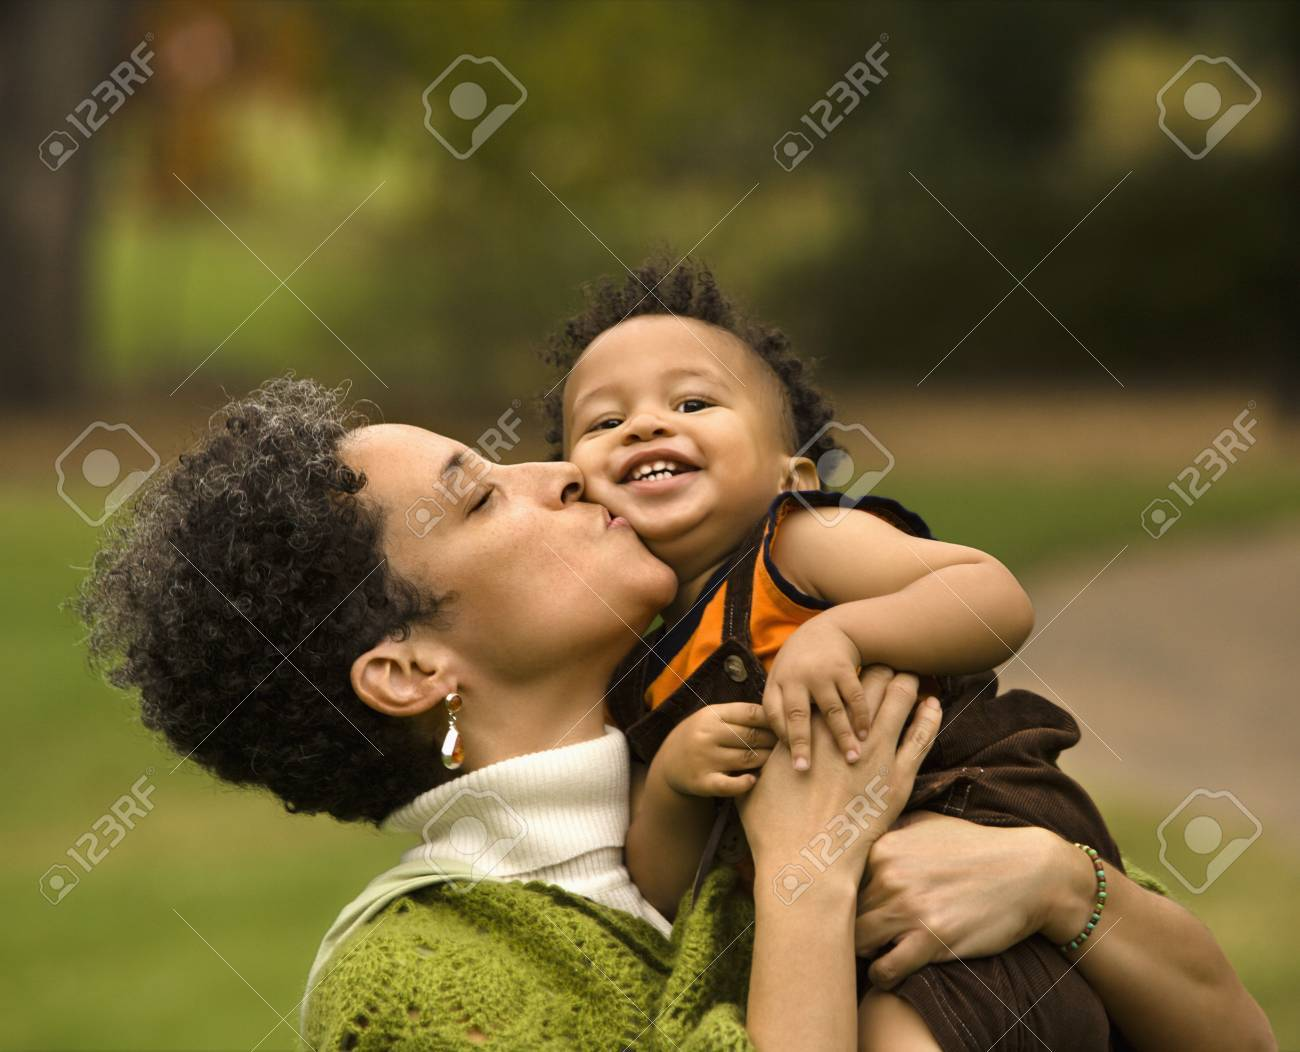 Head and shoulder portrait of woman holding and kissing boy as he smiles. Stock Photo - 2615947